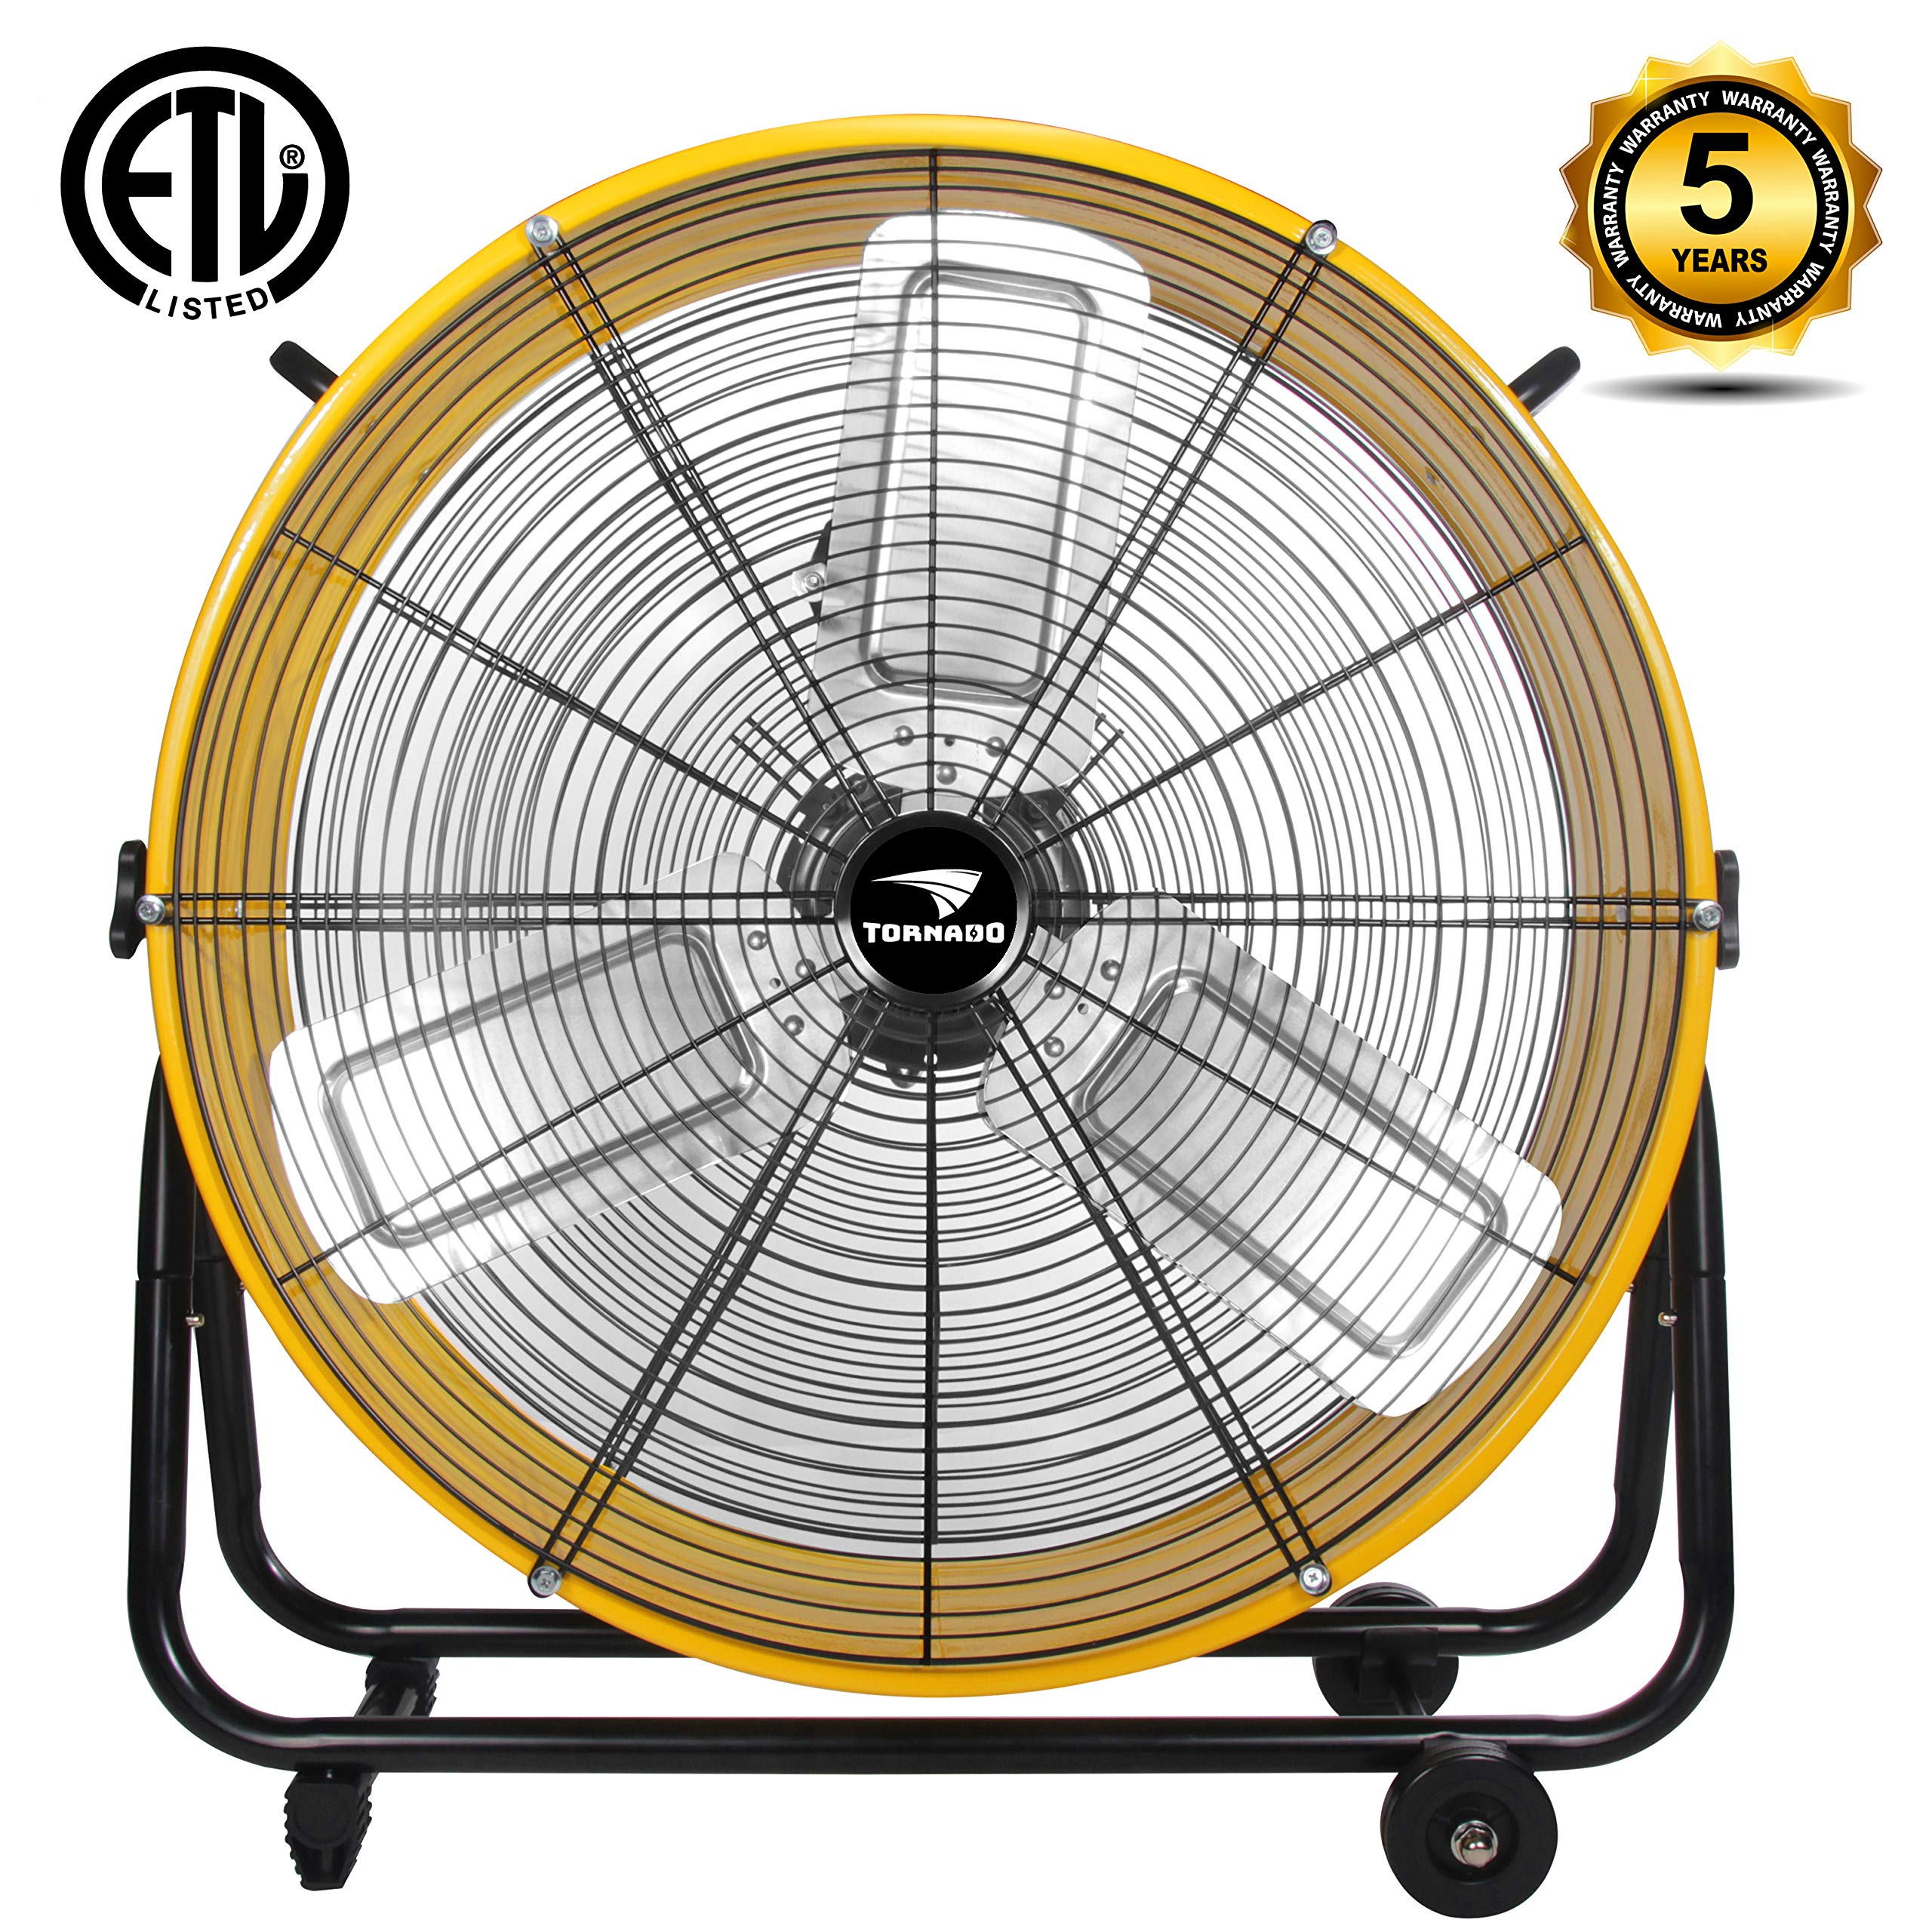 Tornado - 24 Inch High Velocity Air Movement Heavy Duty Metal Drum Fan - 3 Speed Air Circulator Fan - For Industrial, Commercial, Residential, and Greenhouse Use - ETL Safety Listed - 5 Years Warranty by Tornado